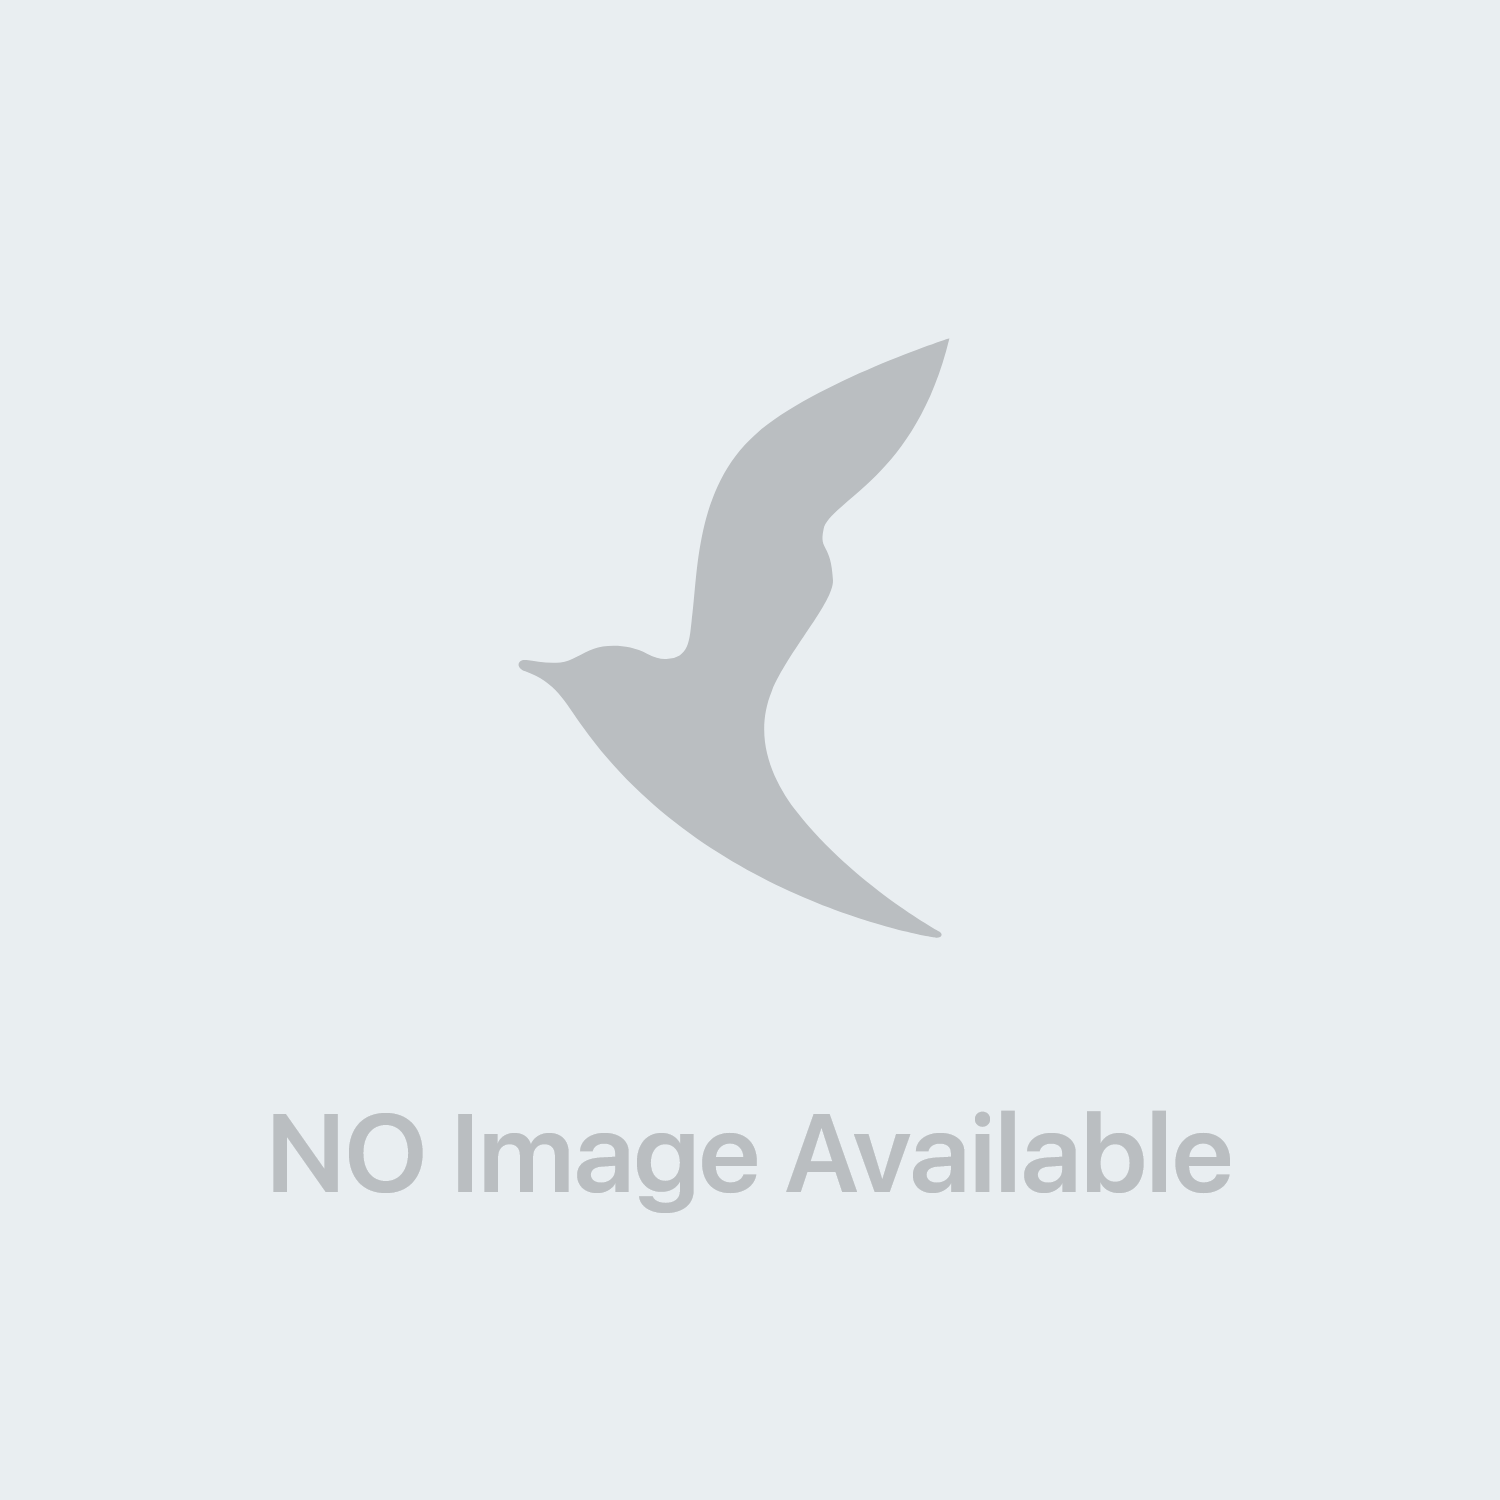 OPTIMA GLUCOSAMINA Joint Gel Optima Naturals